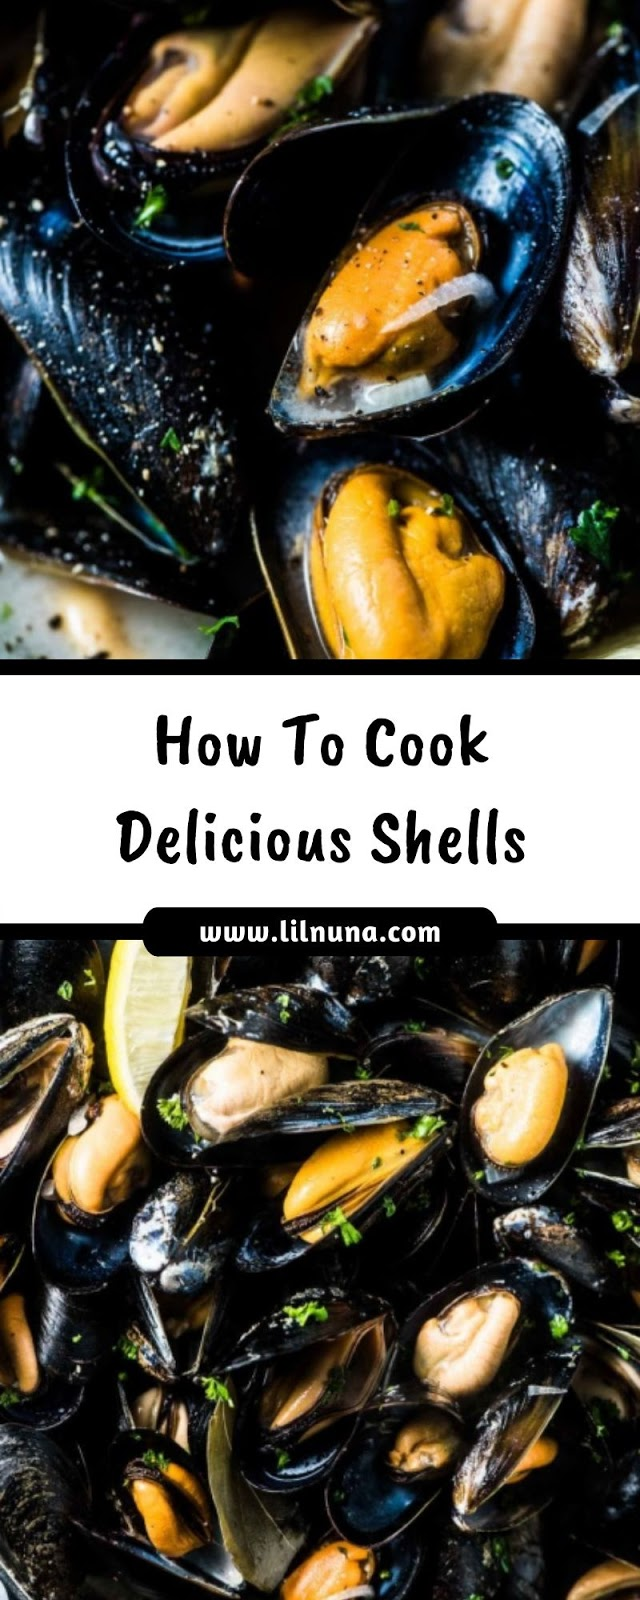 How To Cook Delicious Shells